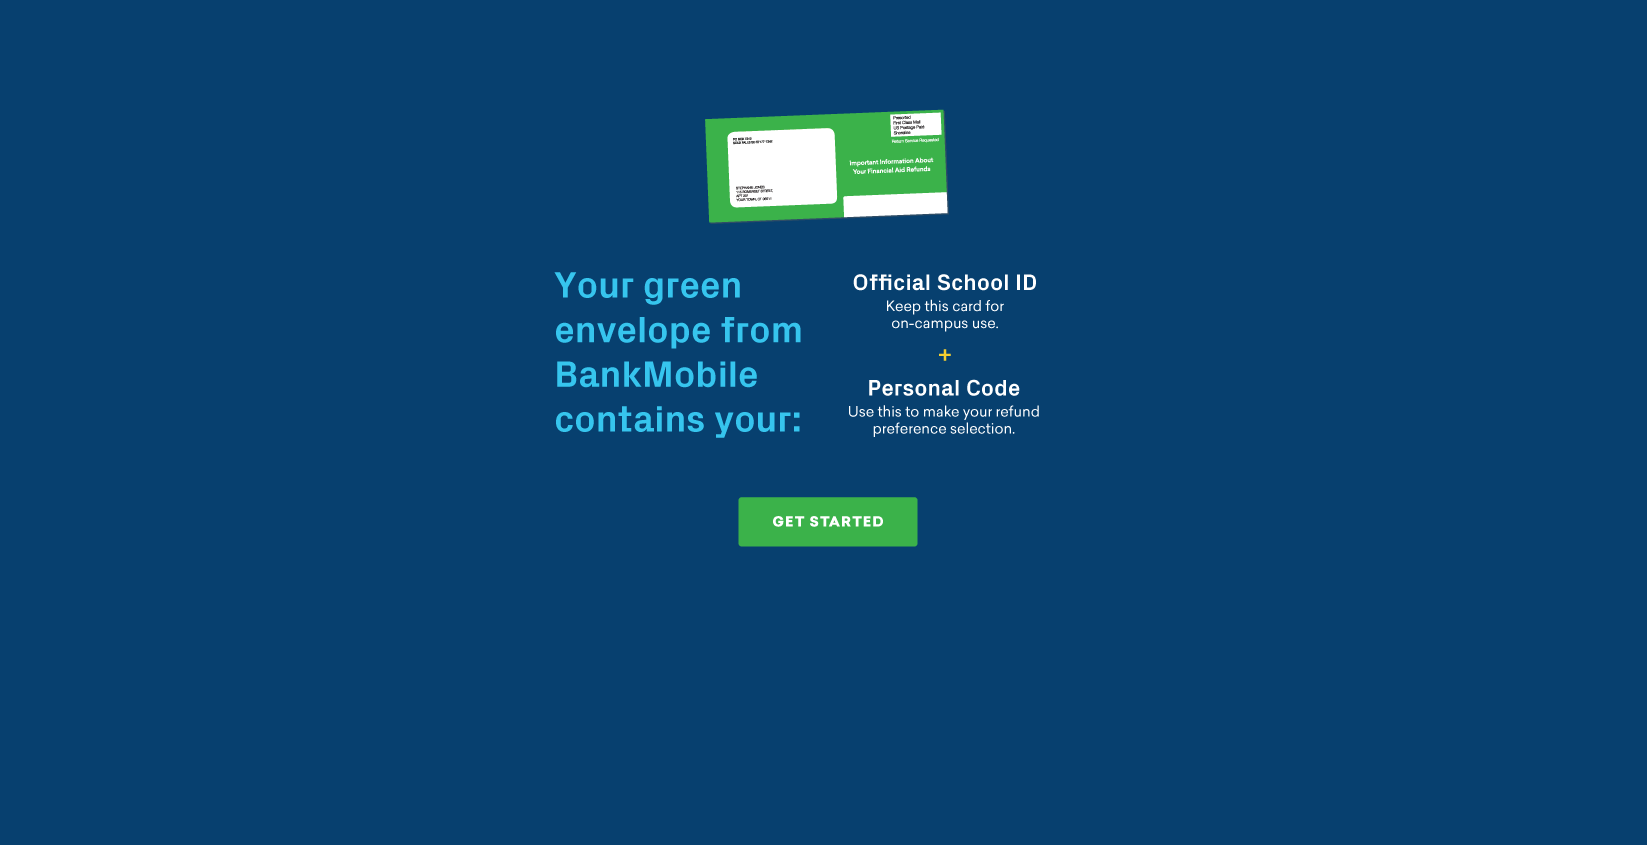 Your green envelope from BankMobile contains your official school ID and Personal Code.